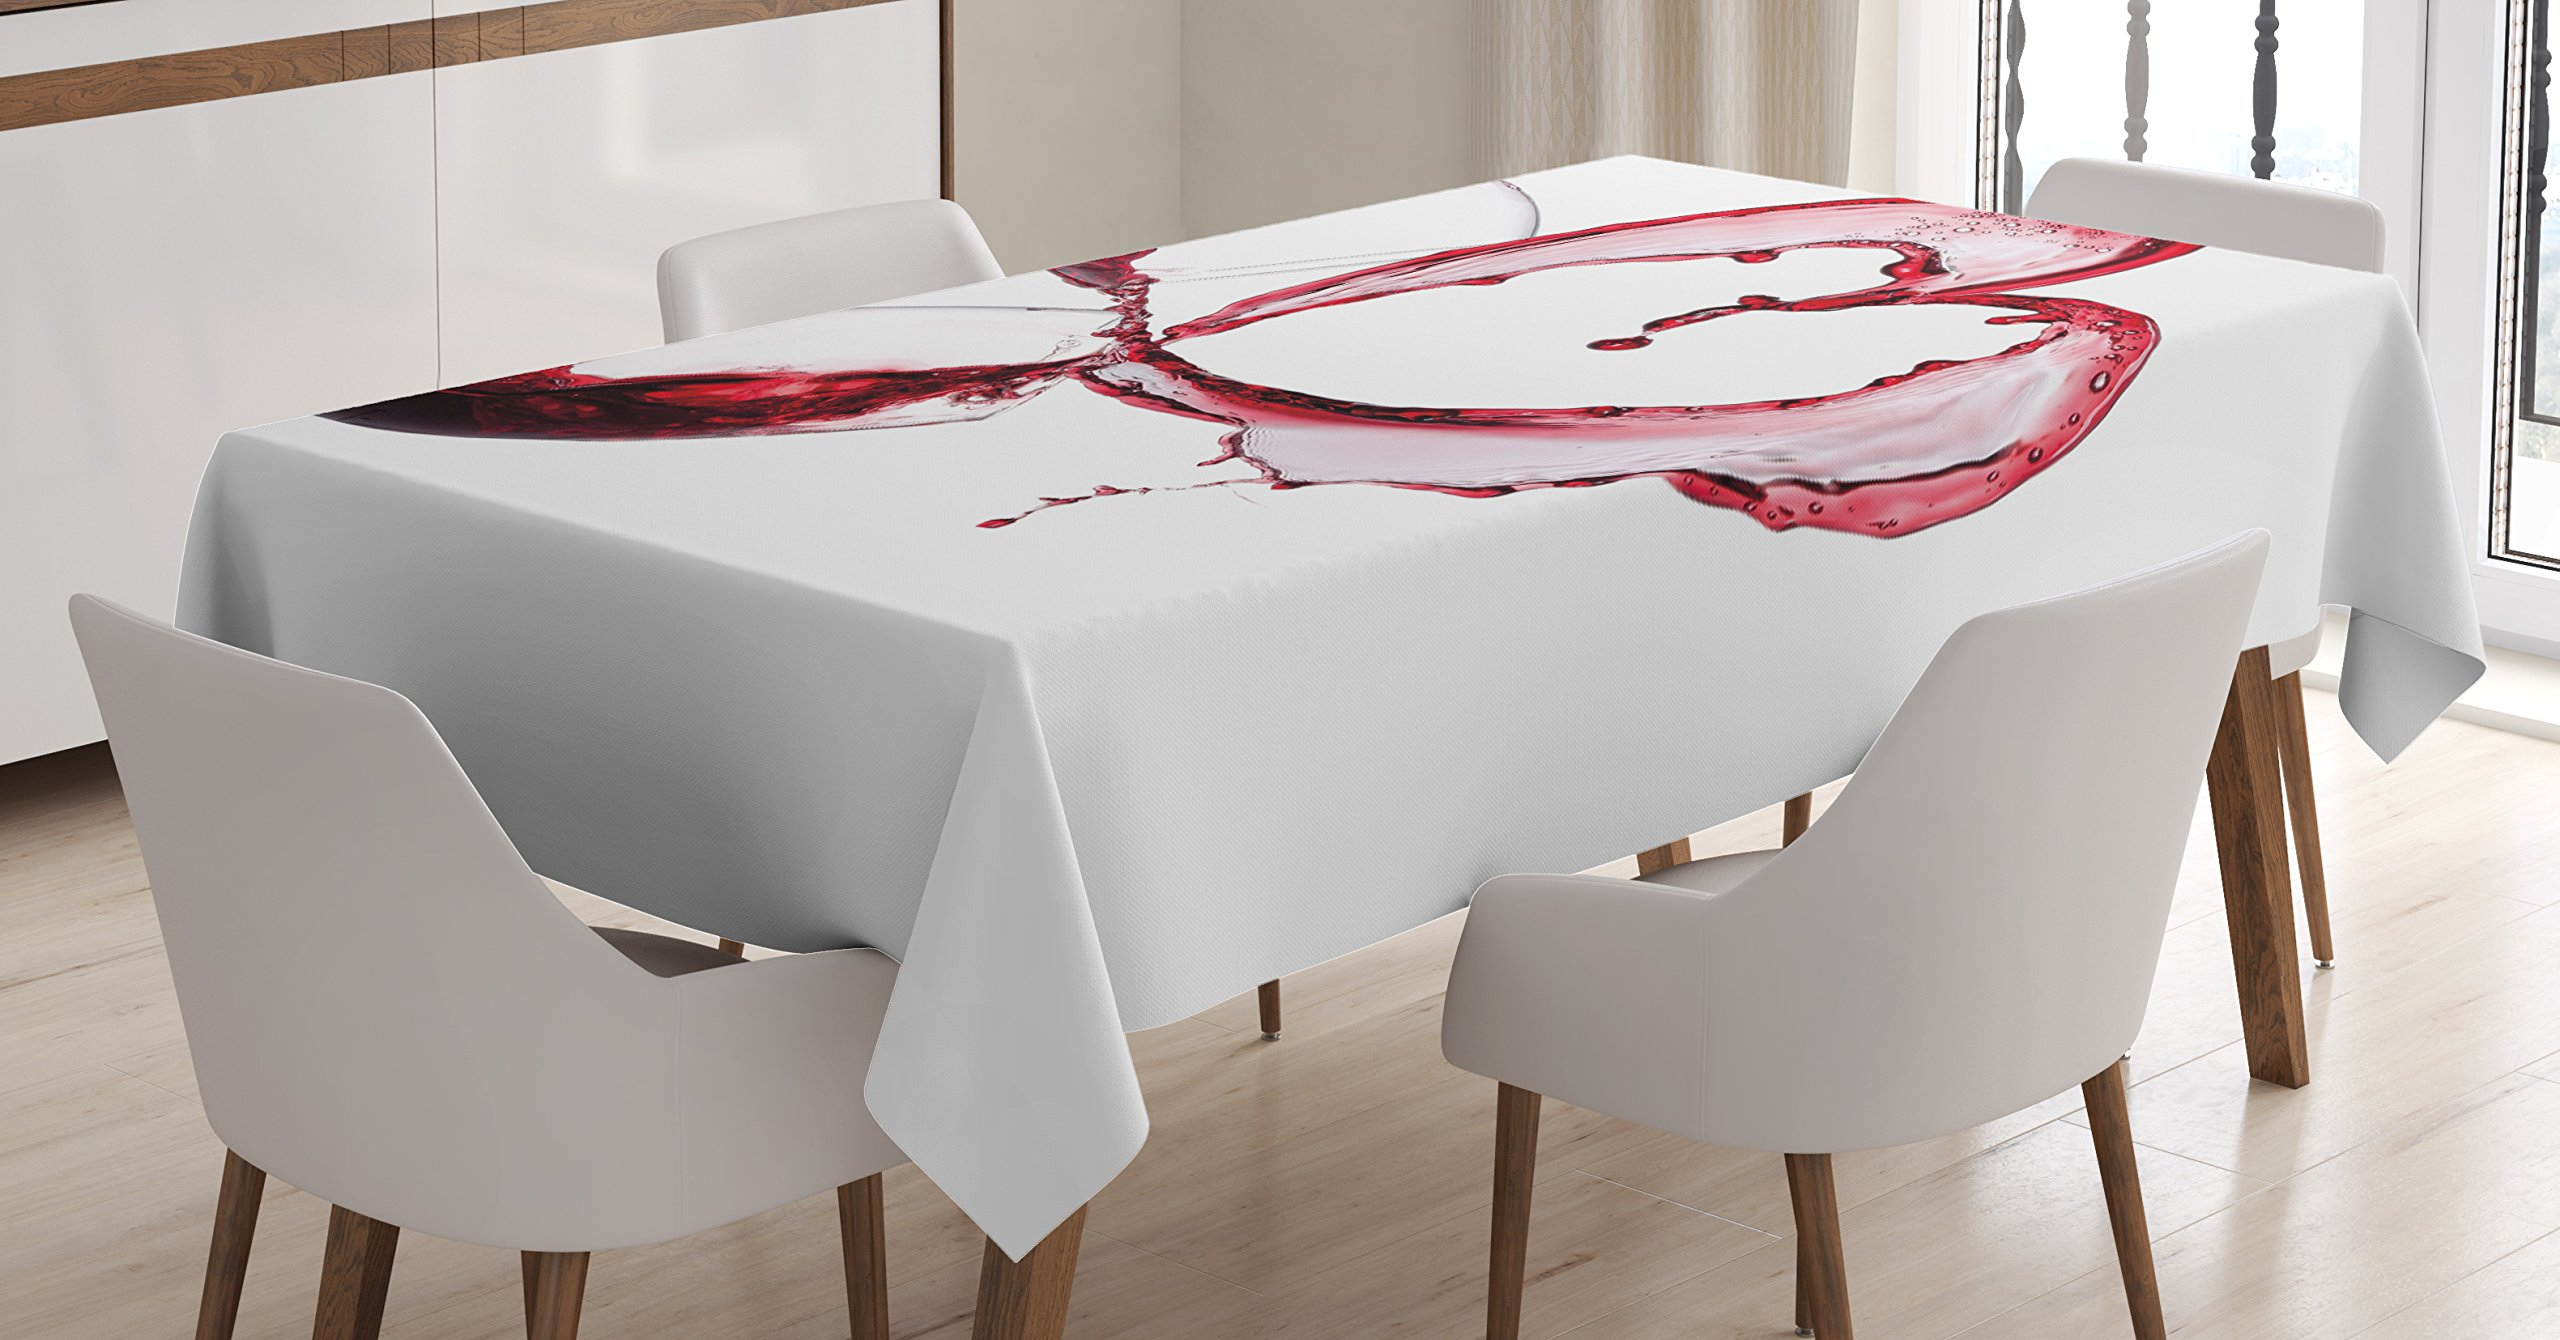 Ambesonne Wine Tablecloth, Heart with Spilling Red Wine in Glasses Romantic Love Valentines Day Concept, Dining Room Kitchen Rectangular Table Cover, 60 W X 84 L inches, Burgundy White Pink by Ambesonne (Image #1)